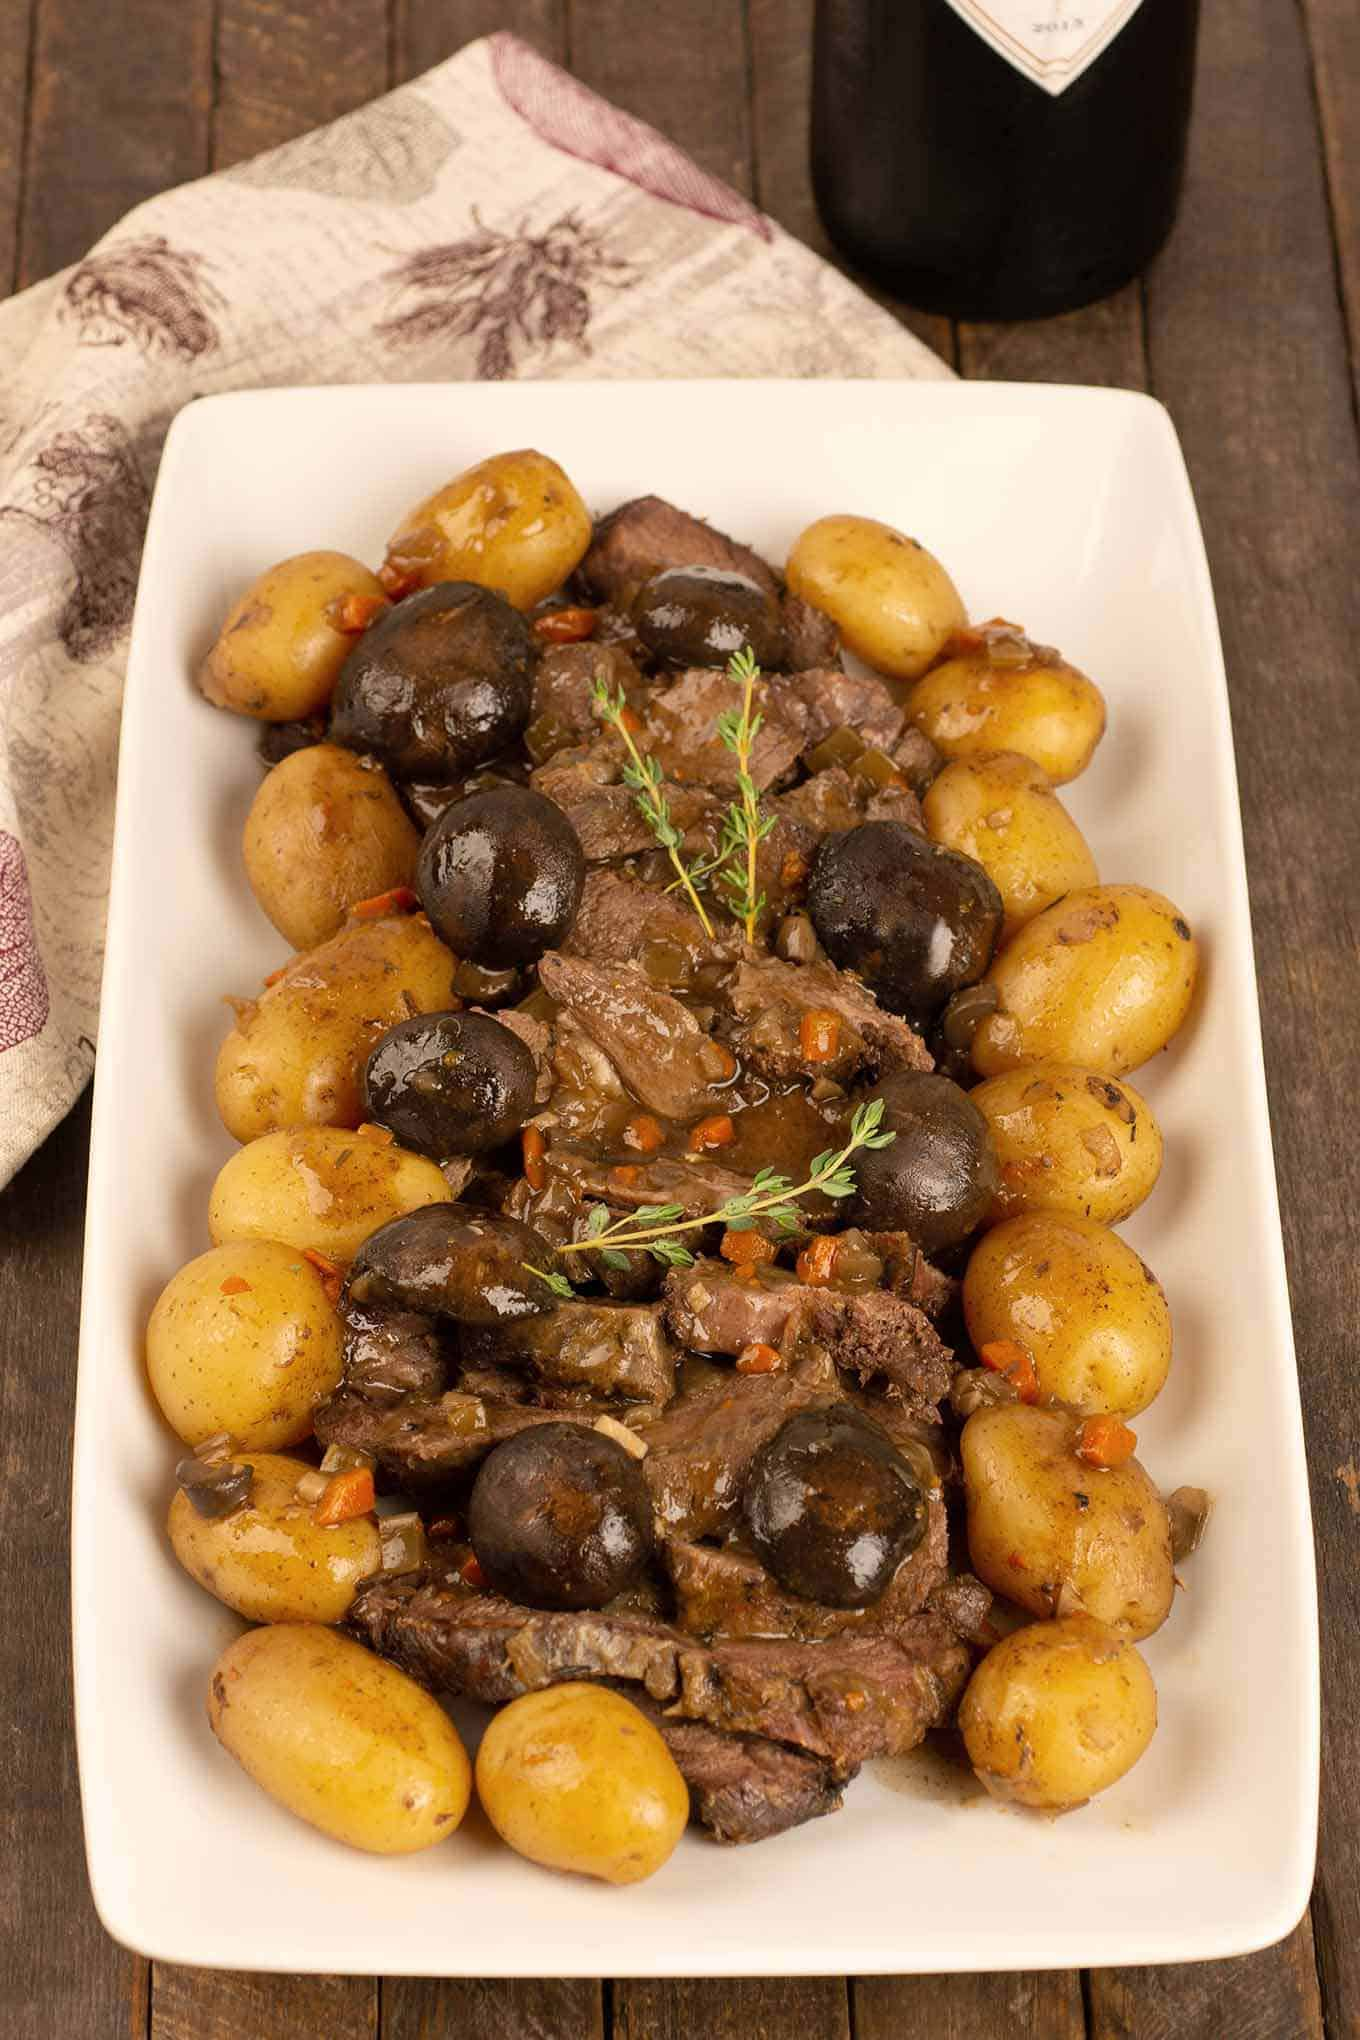 A serving platter with sliced pot roast, mushrooms and baby potatoes garnished with fresh thyme sprigs.